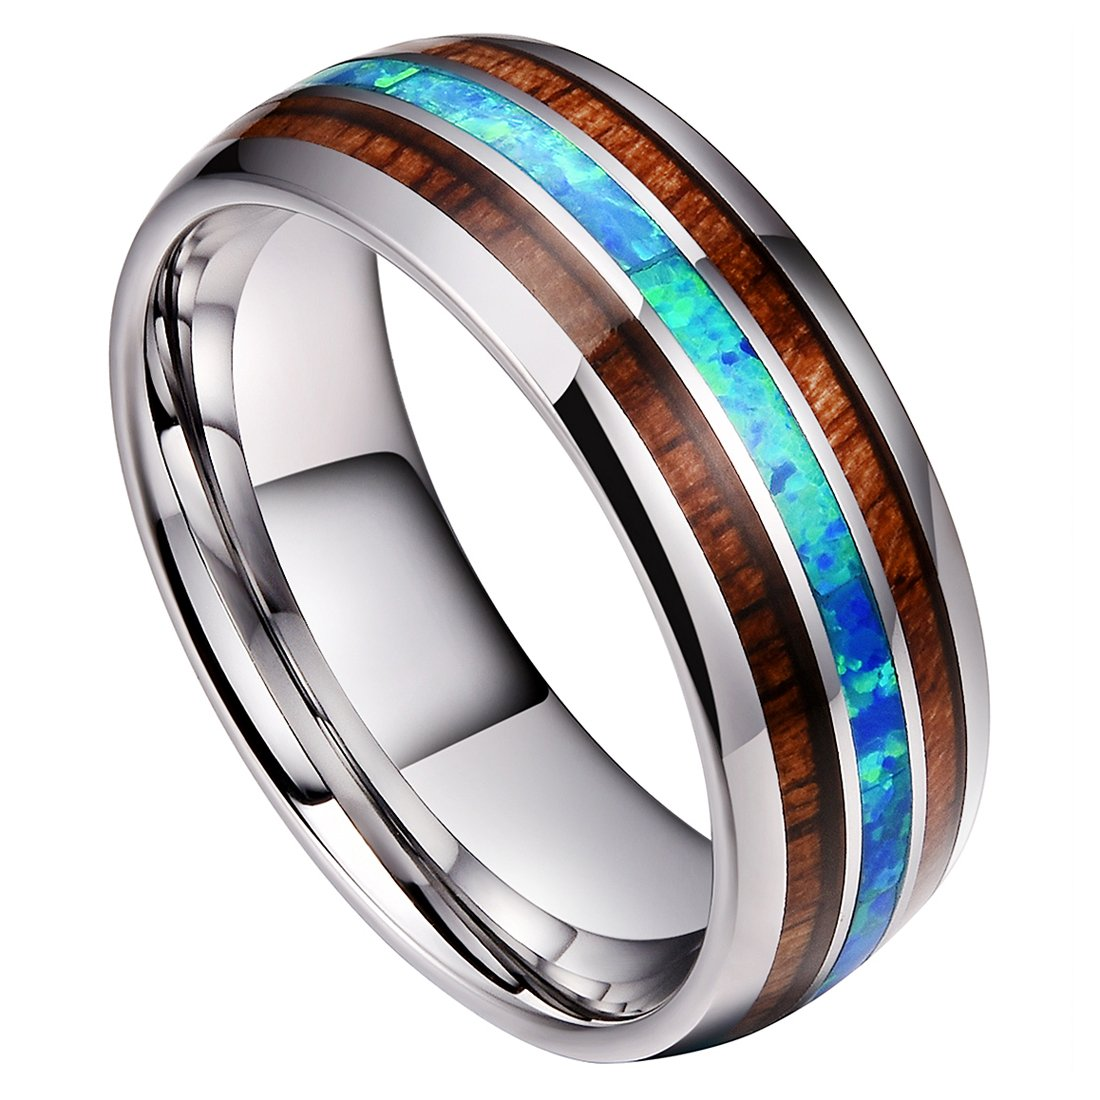 DOUX 8mm Mens Tungsten Carbide Ring Blue Opal Koa Wood Inlay Wedding Band Comfort Fit High Polished(10)